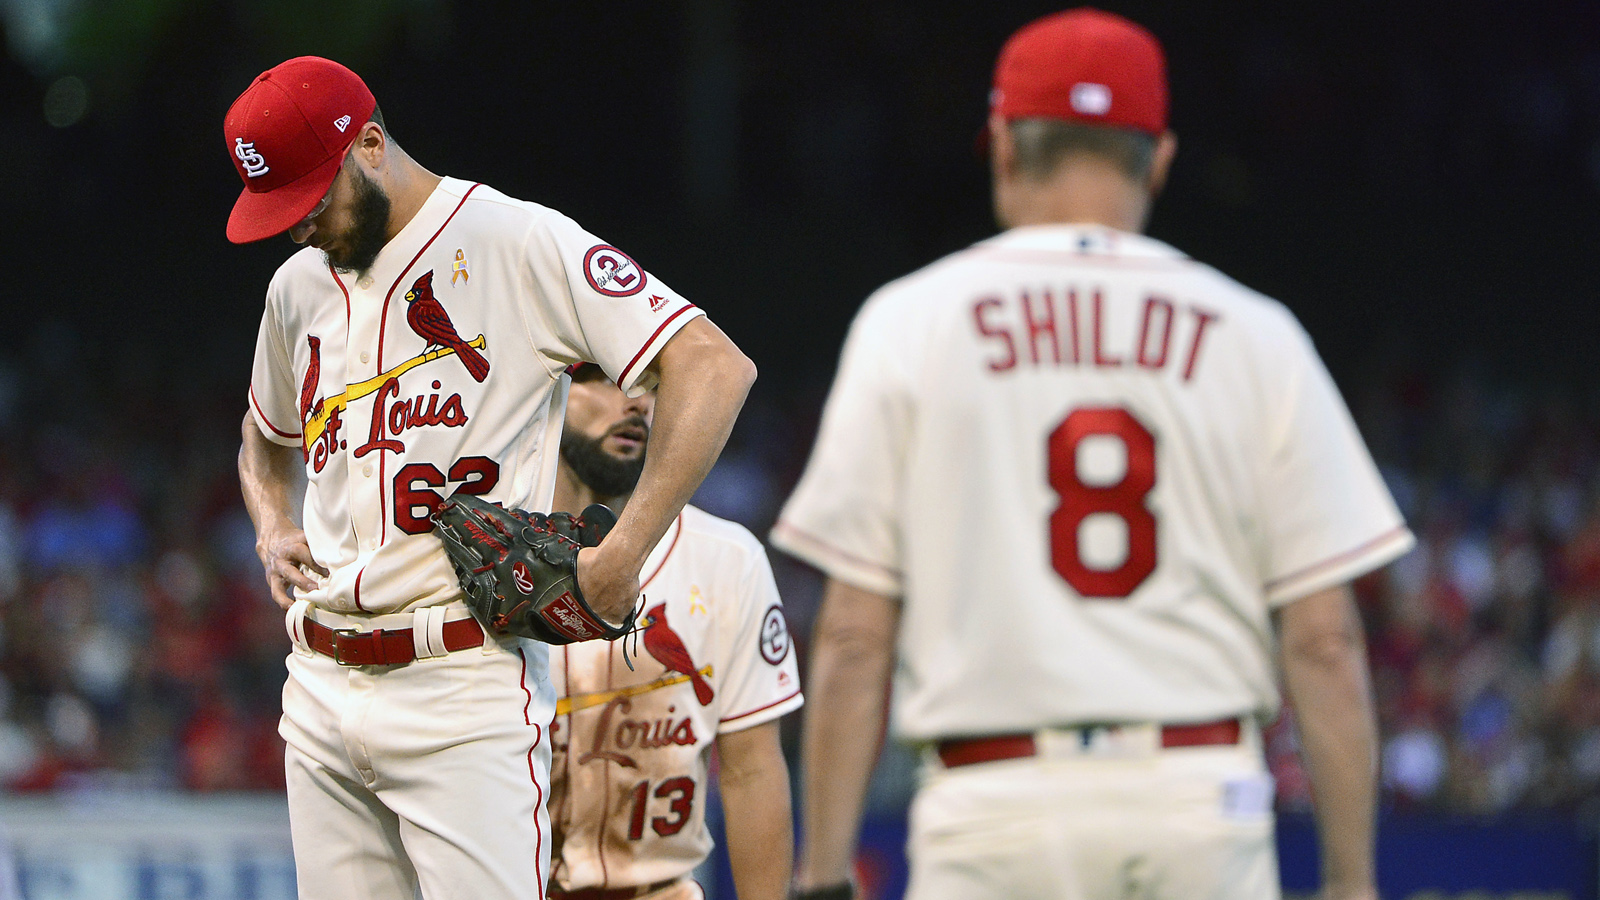 Poncedeleon gets quick hook in Cardinals' 4-0 loss to Reds